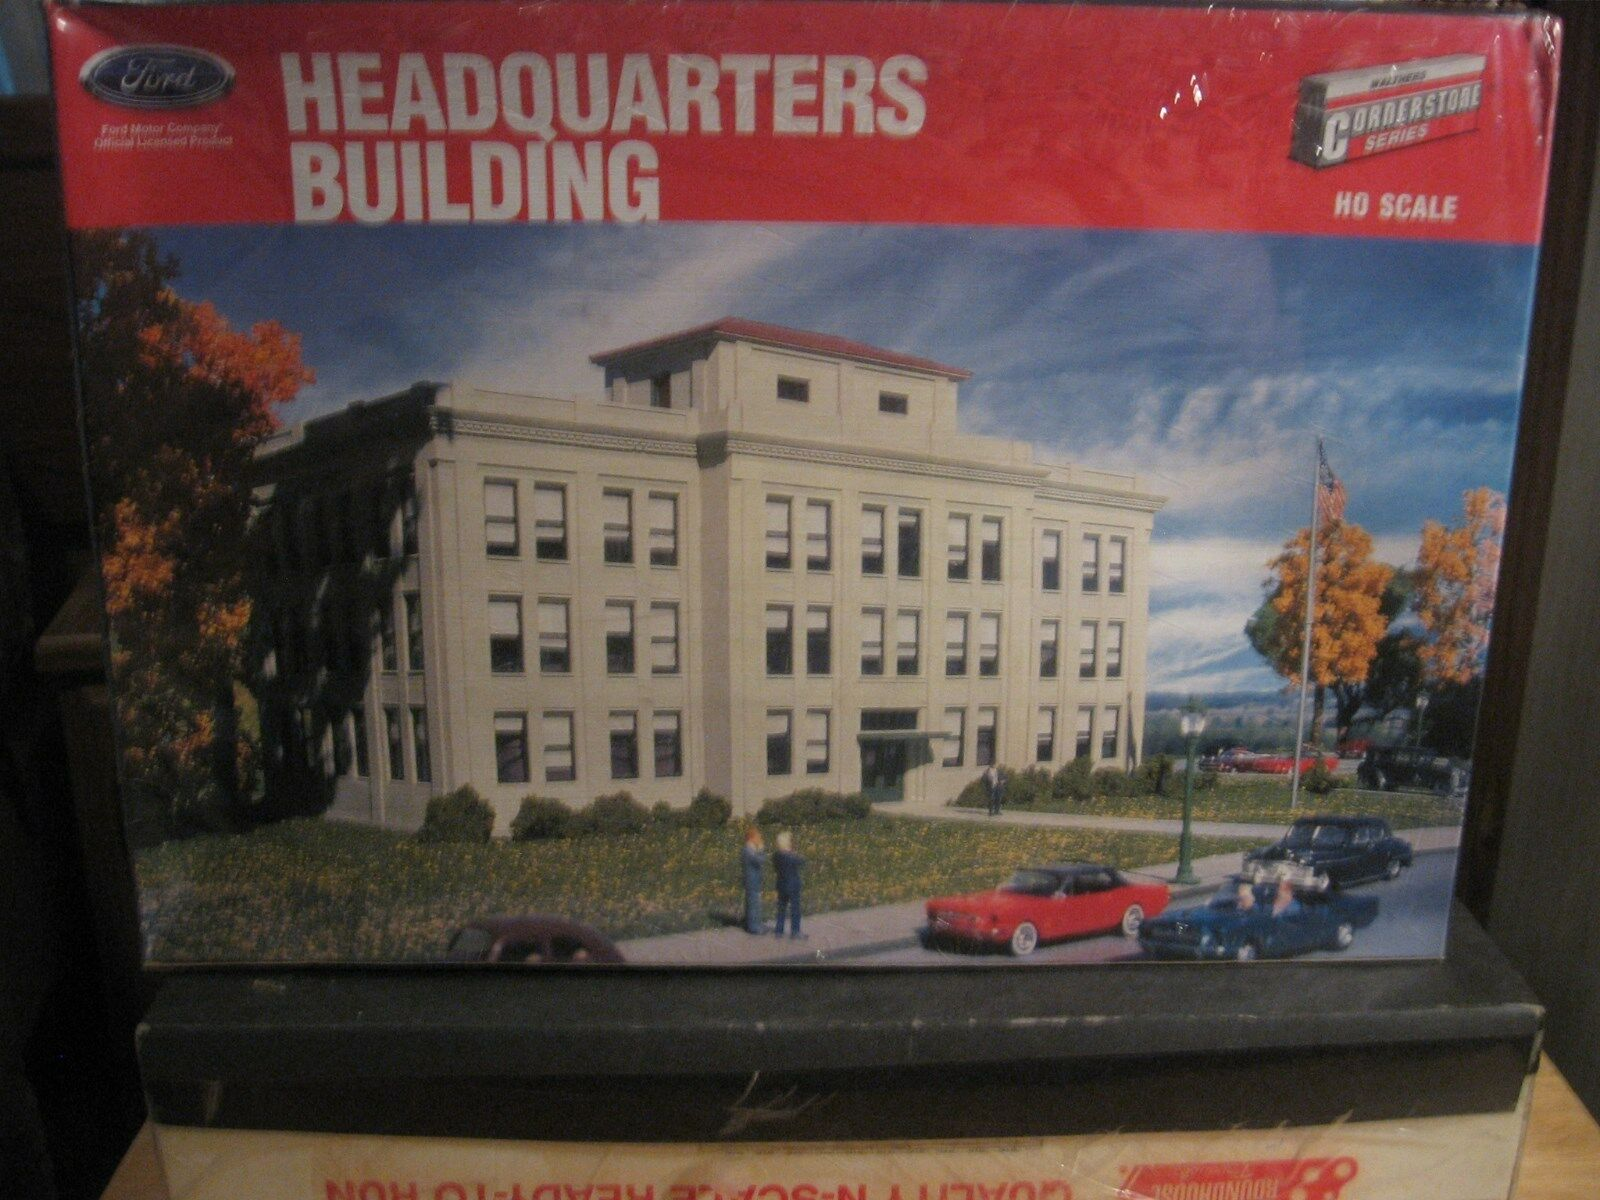 WALTHERS CORNERSTONE SERIES HO SCALE FORD HEADQUARTERS BUILDING